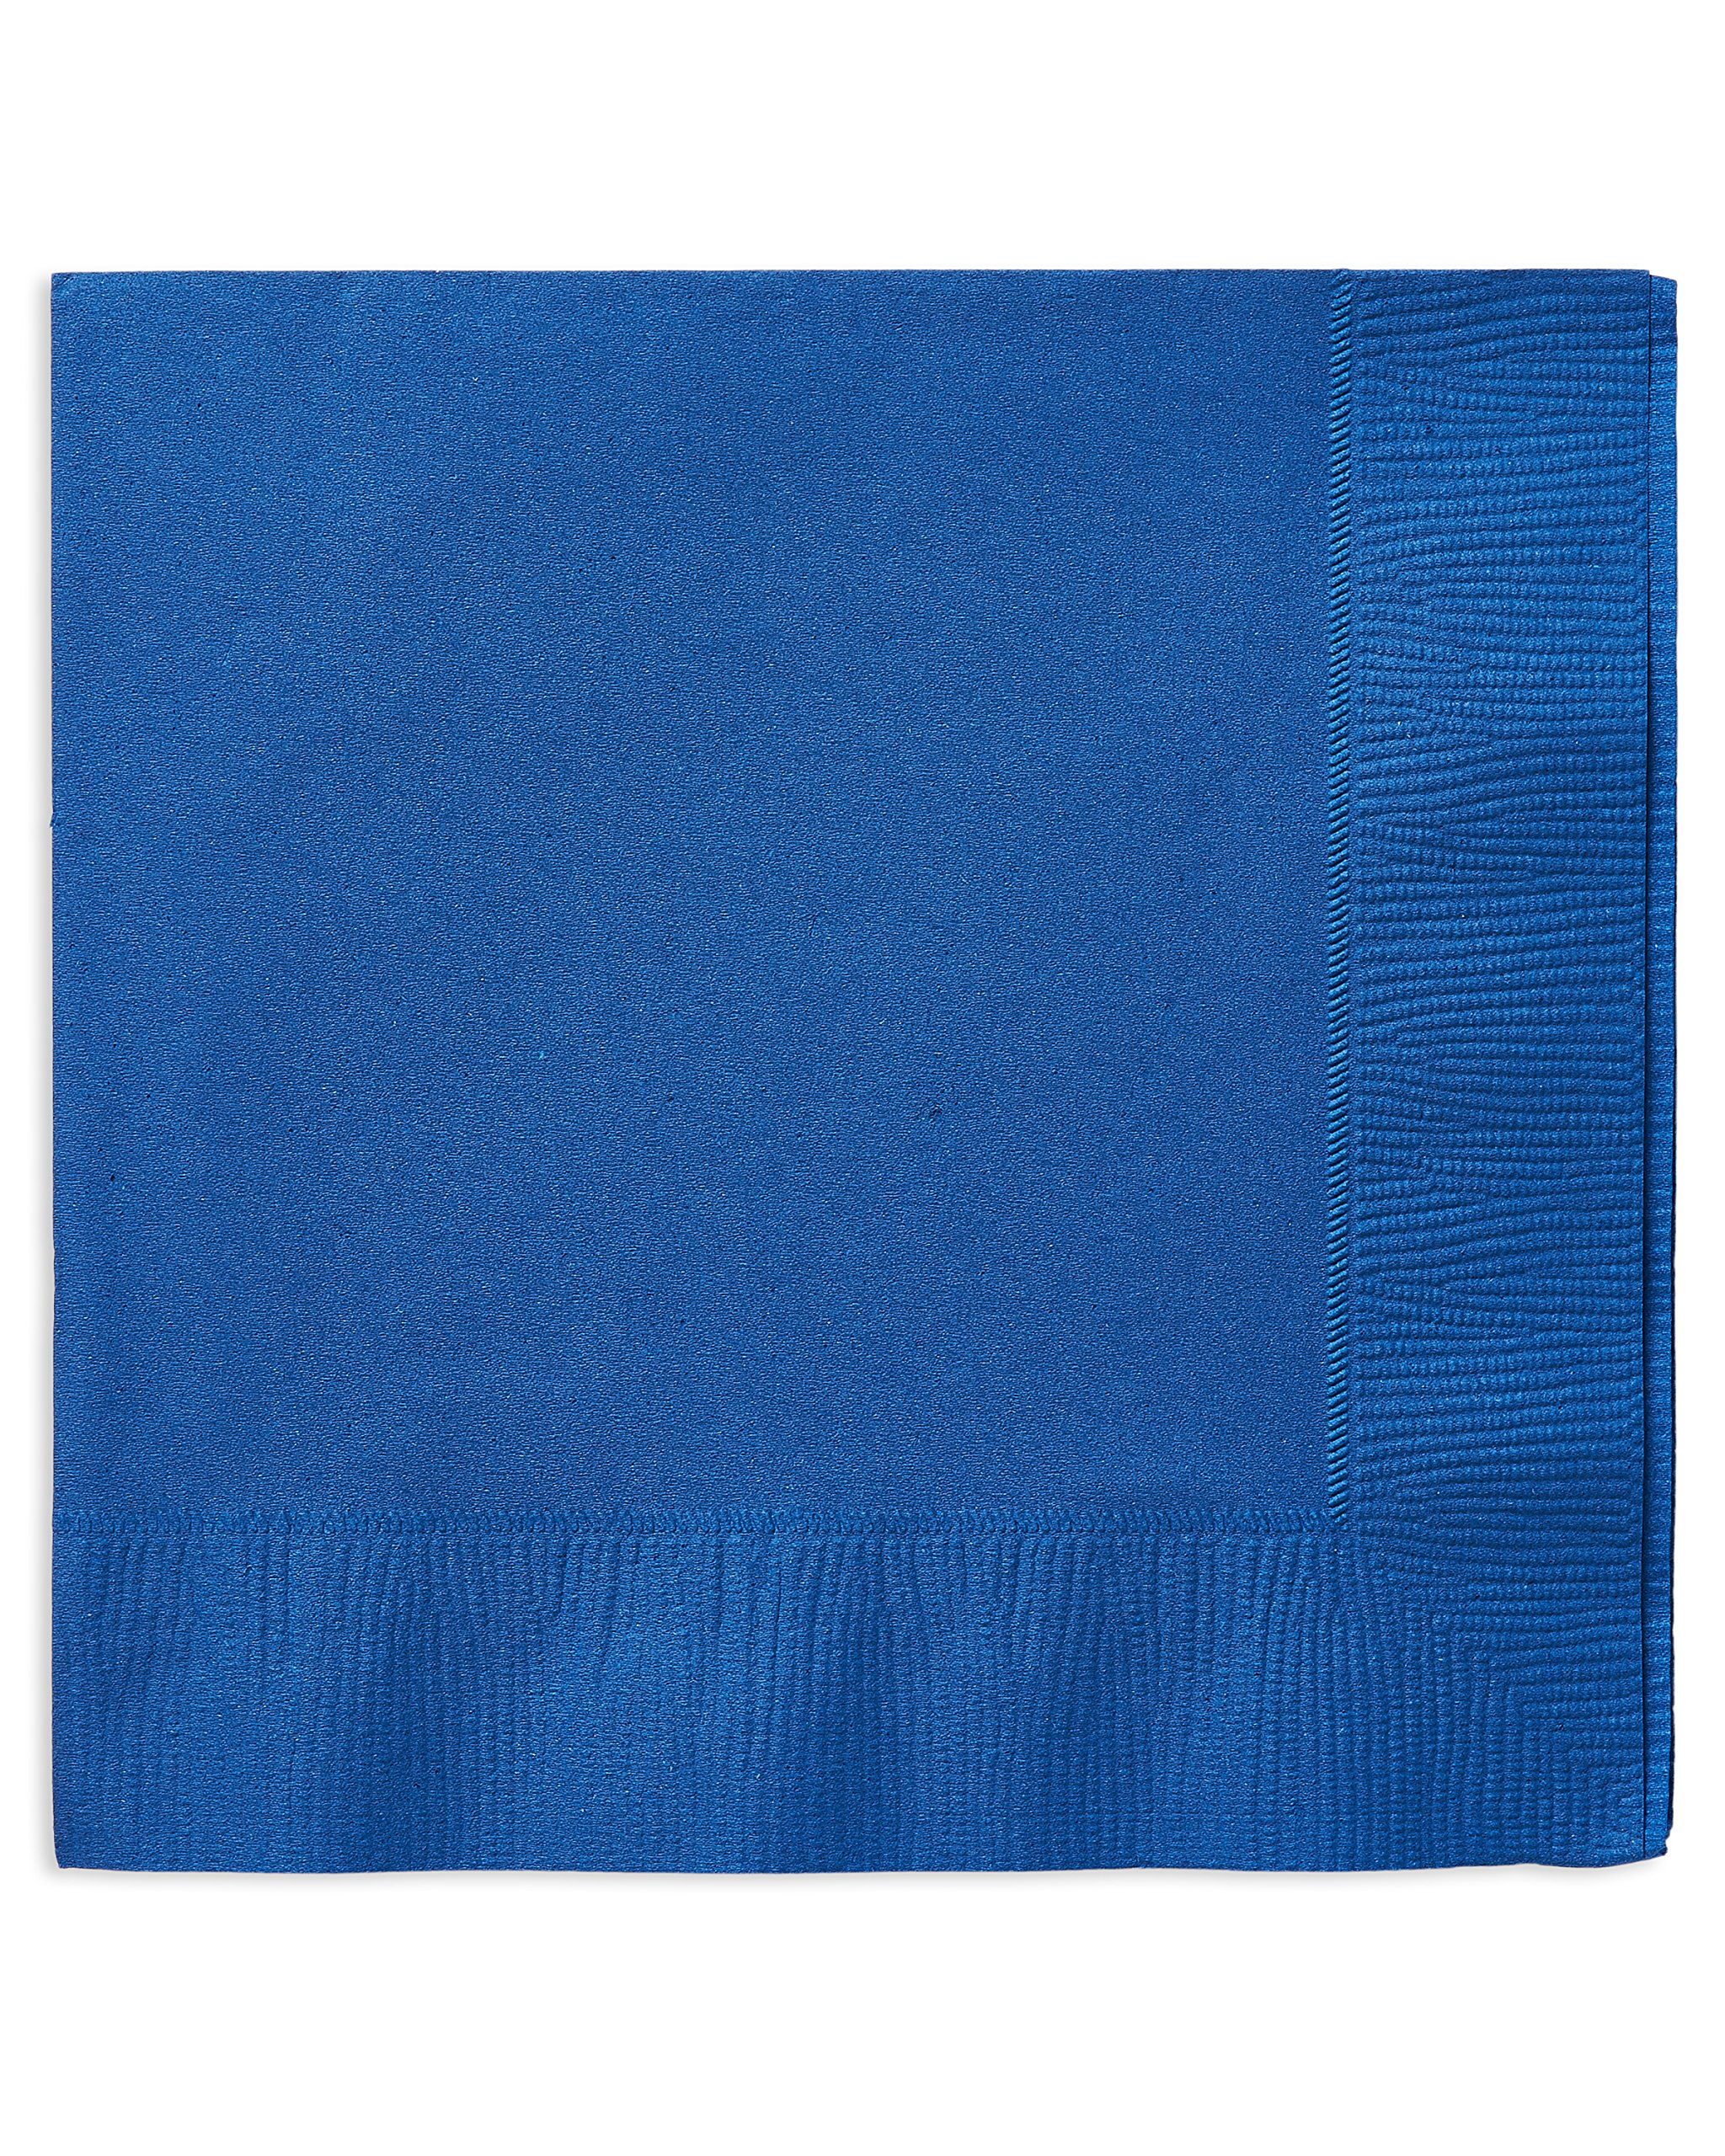 American Greetings Lunch Napkins (50 Count), Royal Blue